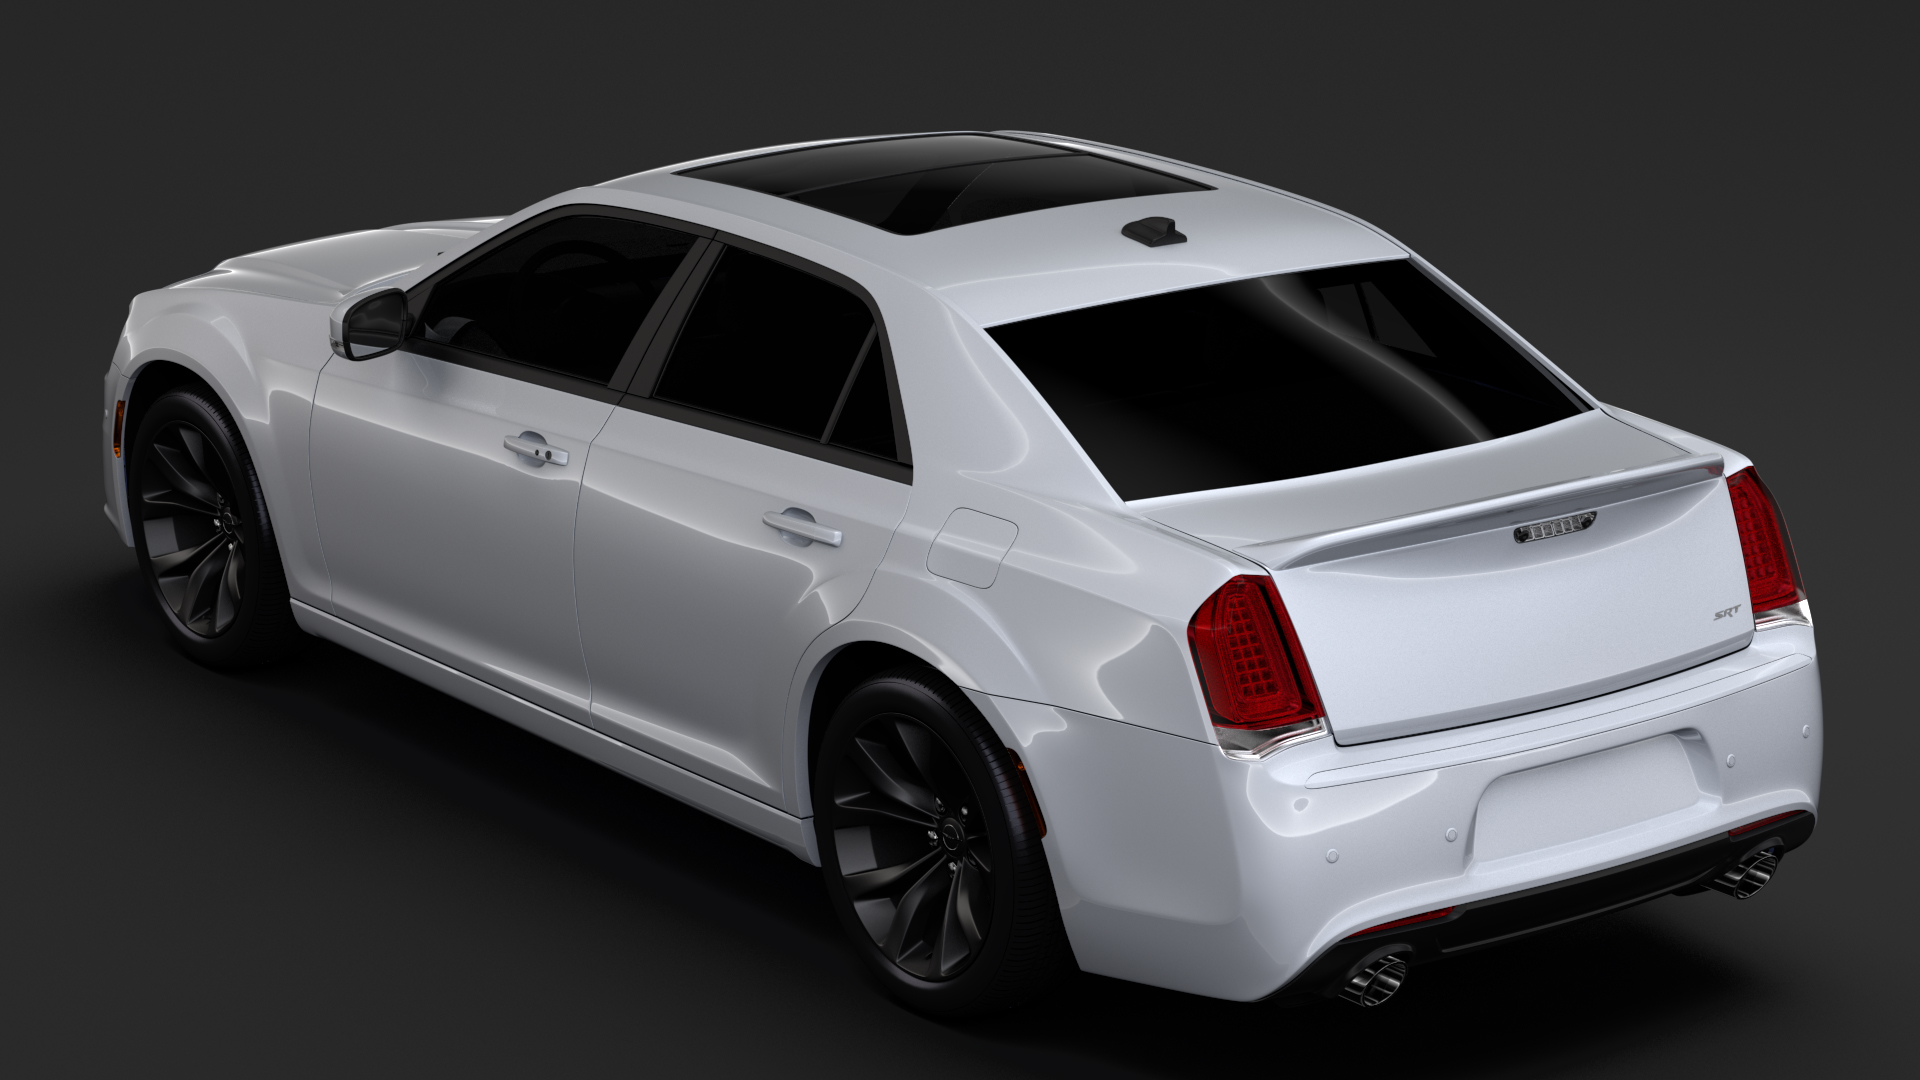 chrysler 300 srt lx2 2018 3d model 3ds max fbx c4d lwo ma mb hrc xsi obj 286097